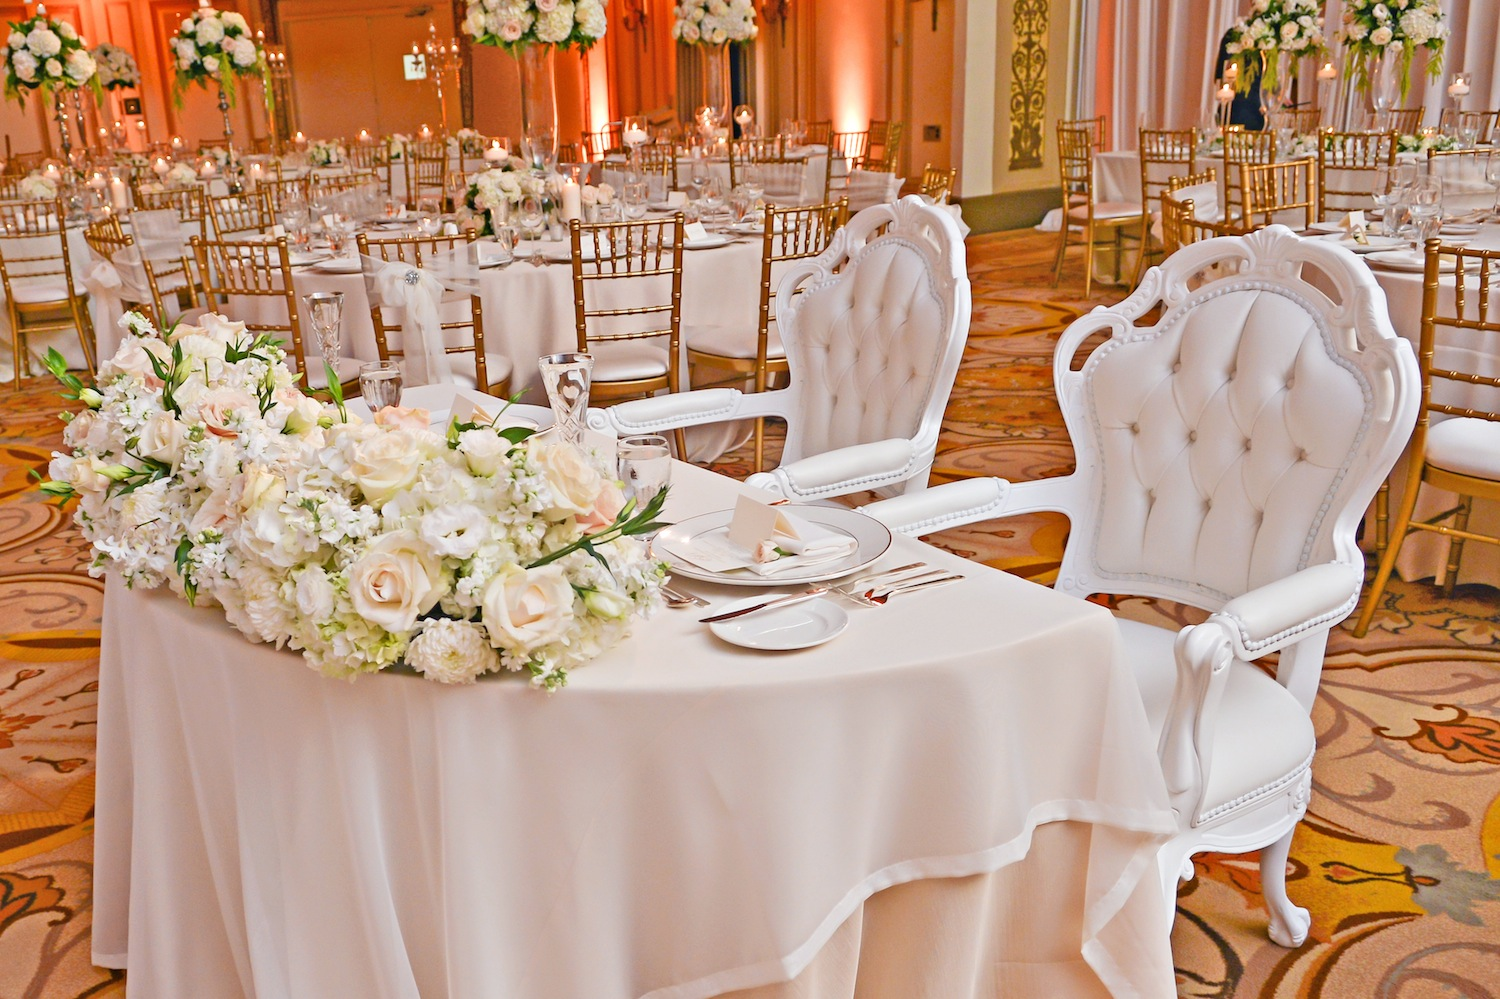 Tufted arm chair at sweetheart table